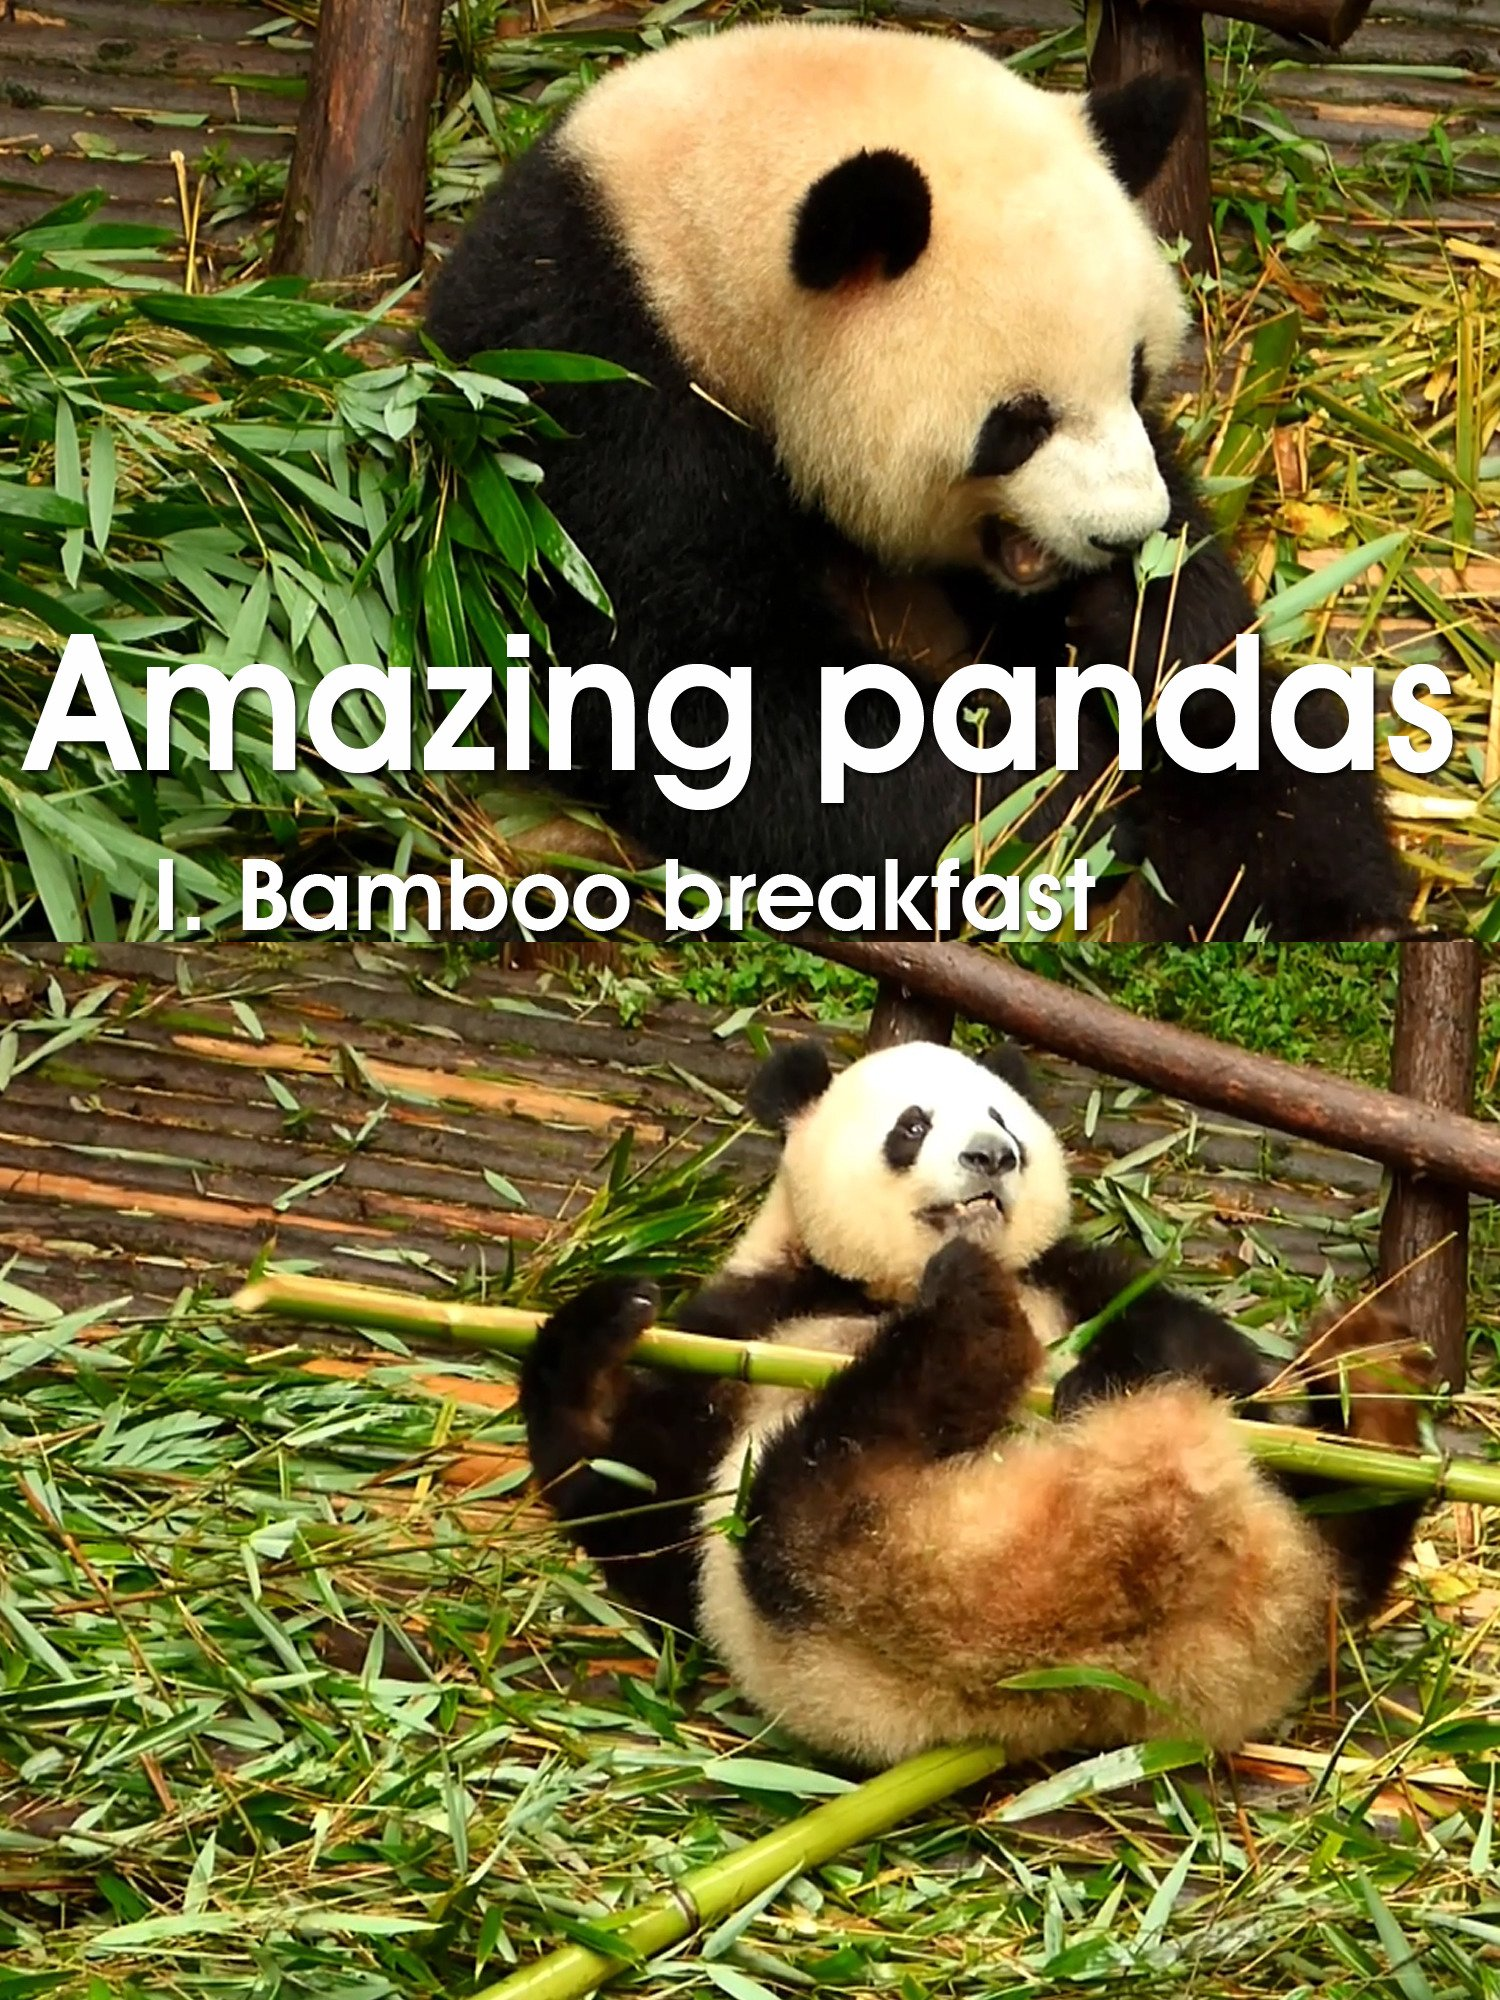 Amazing pandas. I. Bamboo breakfast